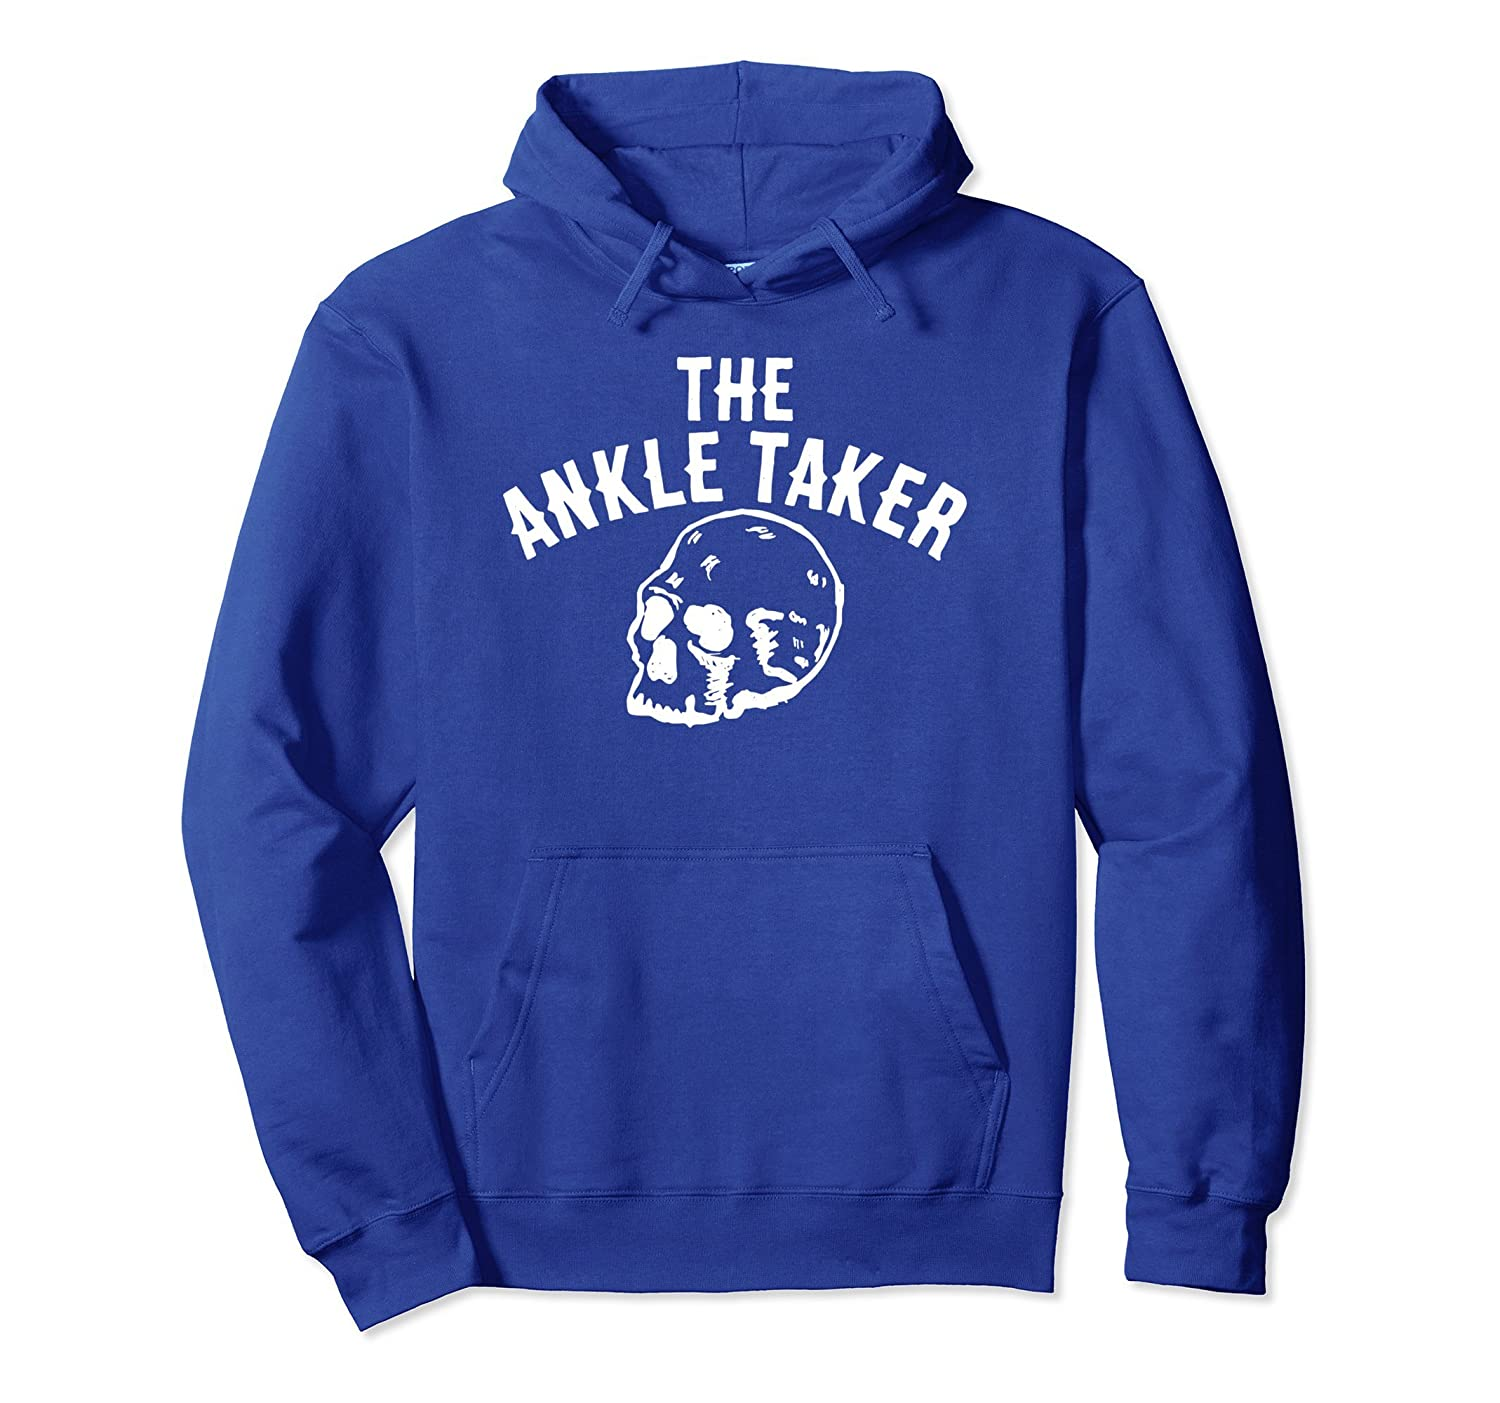 low priced b059d ab14a The Ankle Taker Hoodie Basketball Hoodie-alottee gift – Alottee